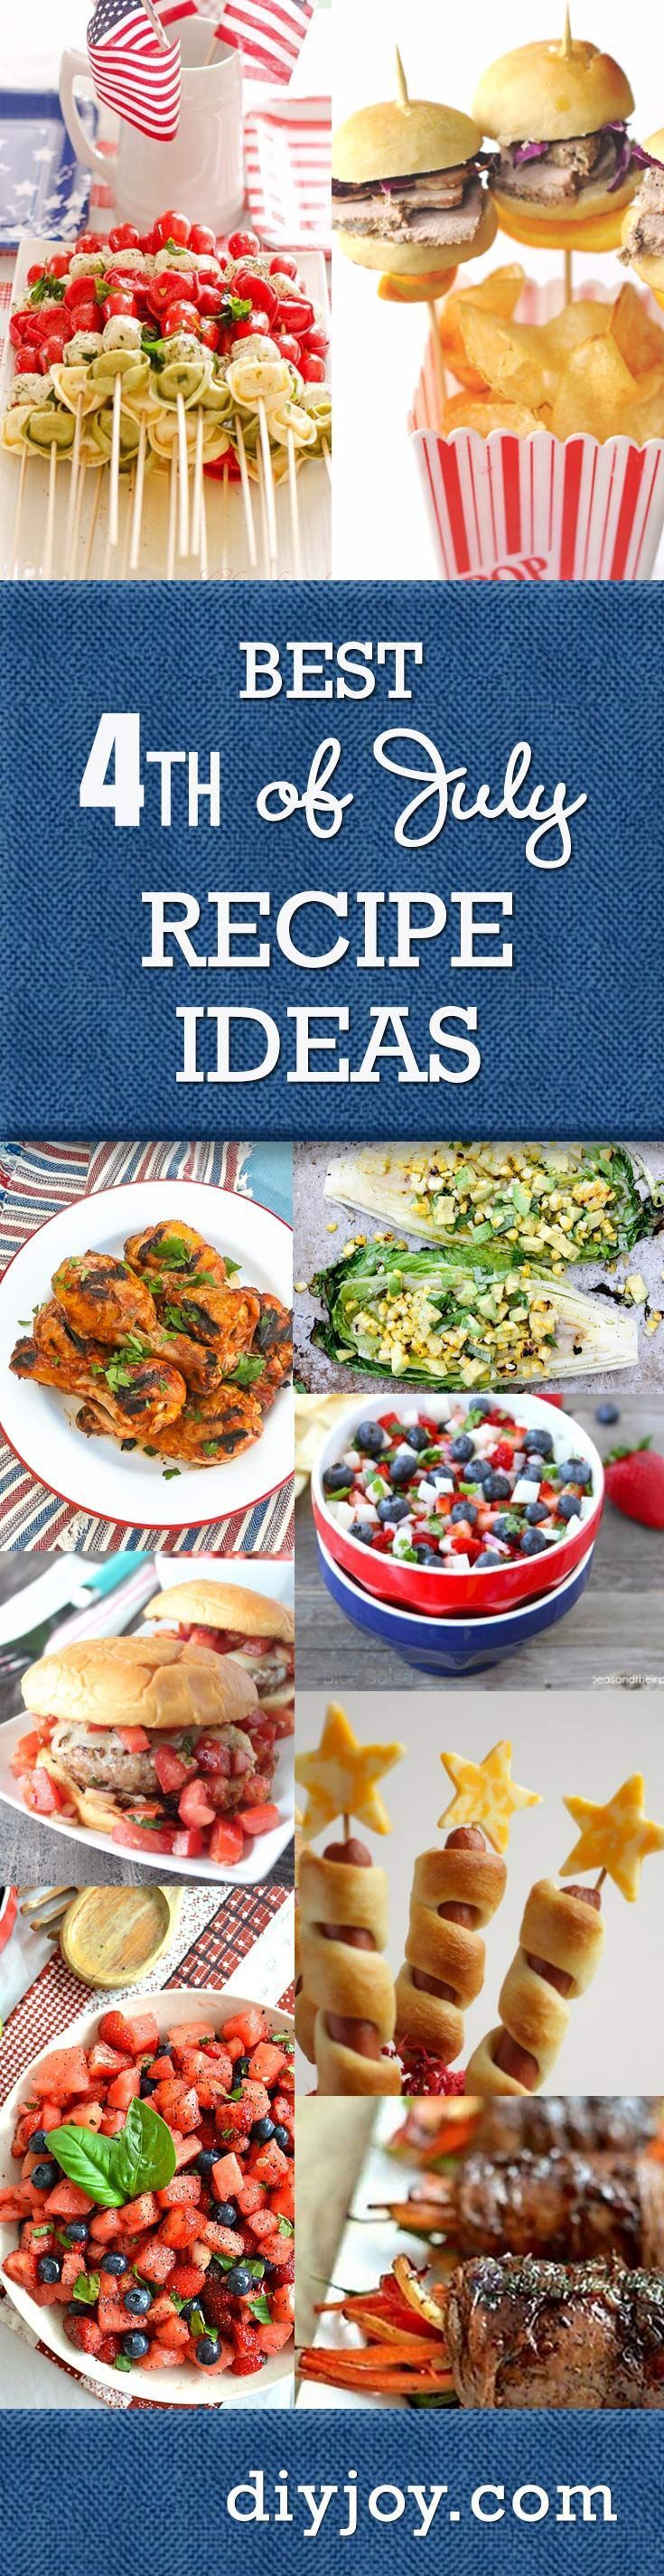 Best 4th of July Recipe Ideas Ever! Fun Food for the Fourth and DIY Party Food - Burgers, Snacks and Appetizers, Drinks, Food for Kids and Easy Ideas for Parties and Cookouts